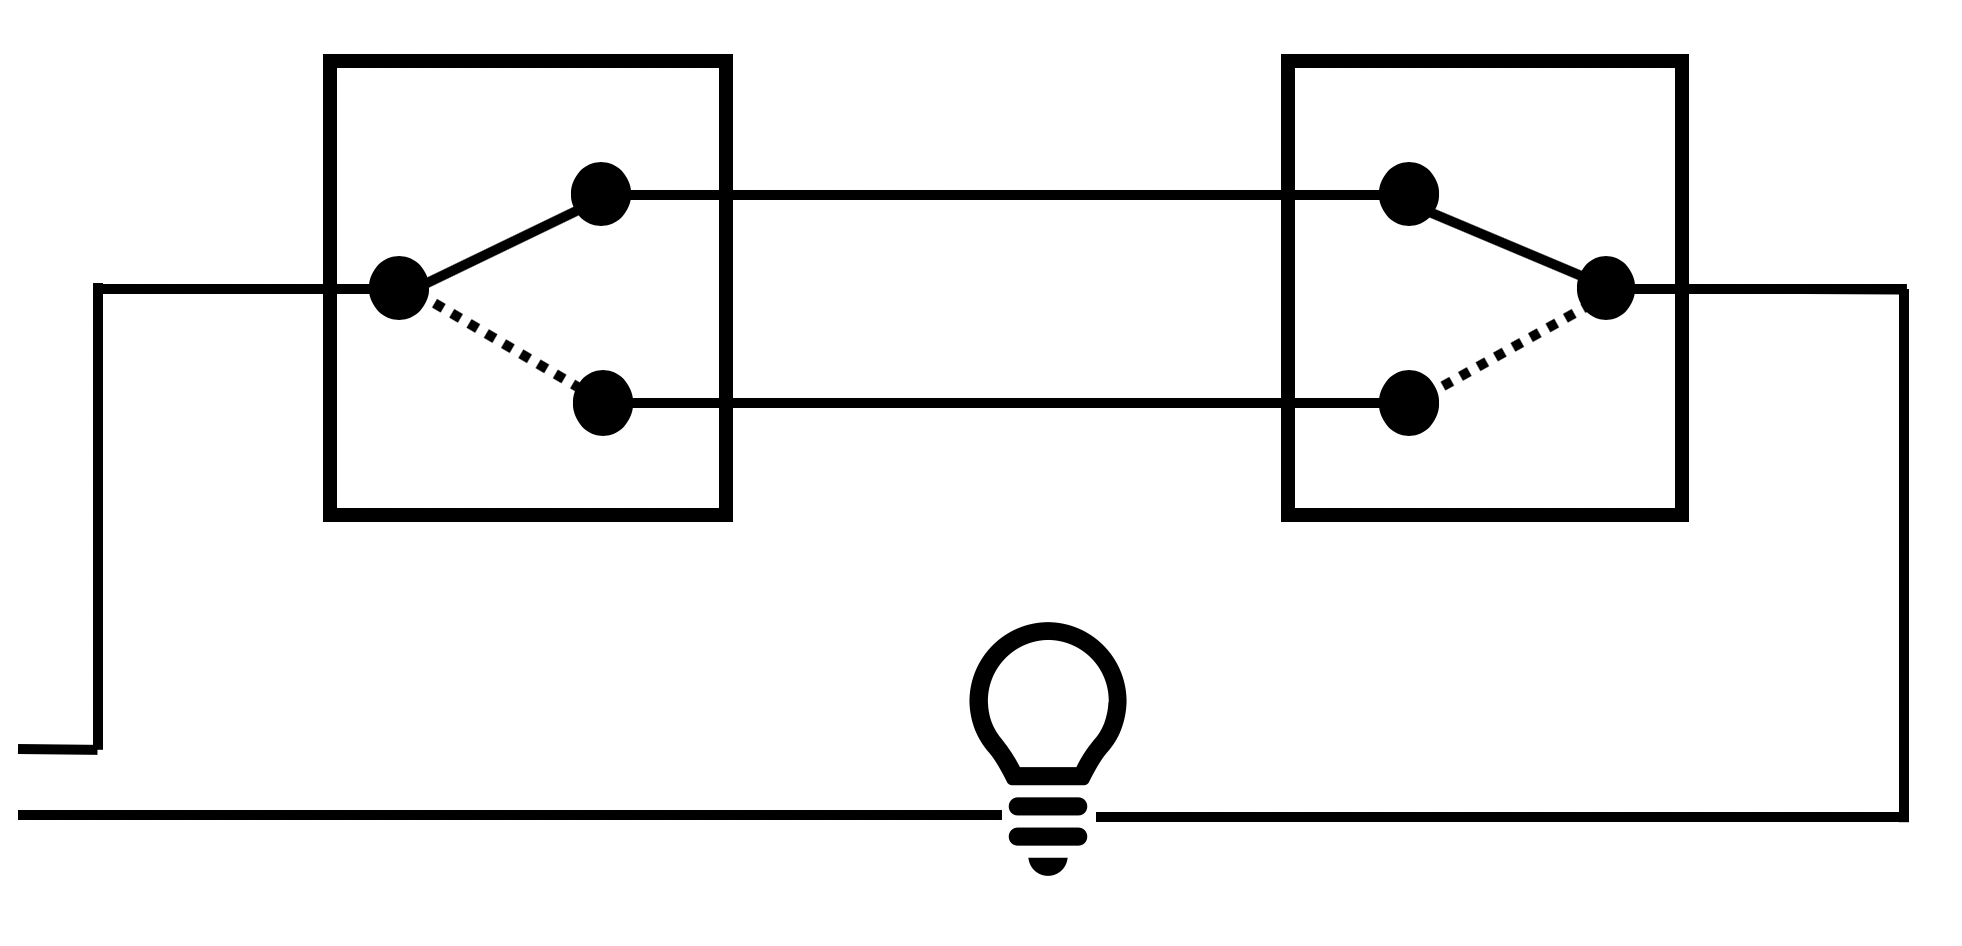 Three way switch Circuit diagram